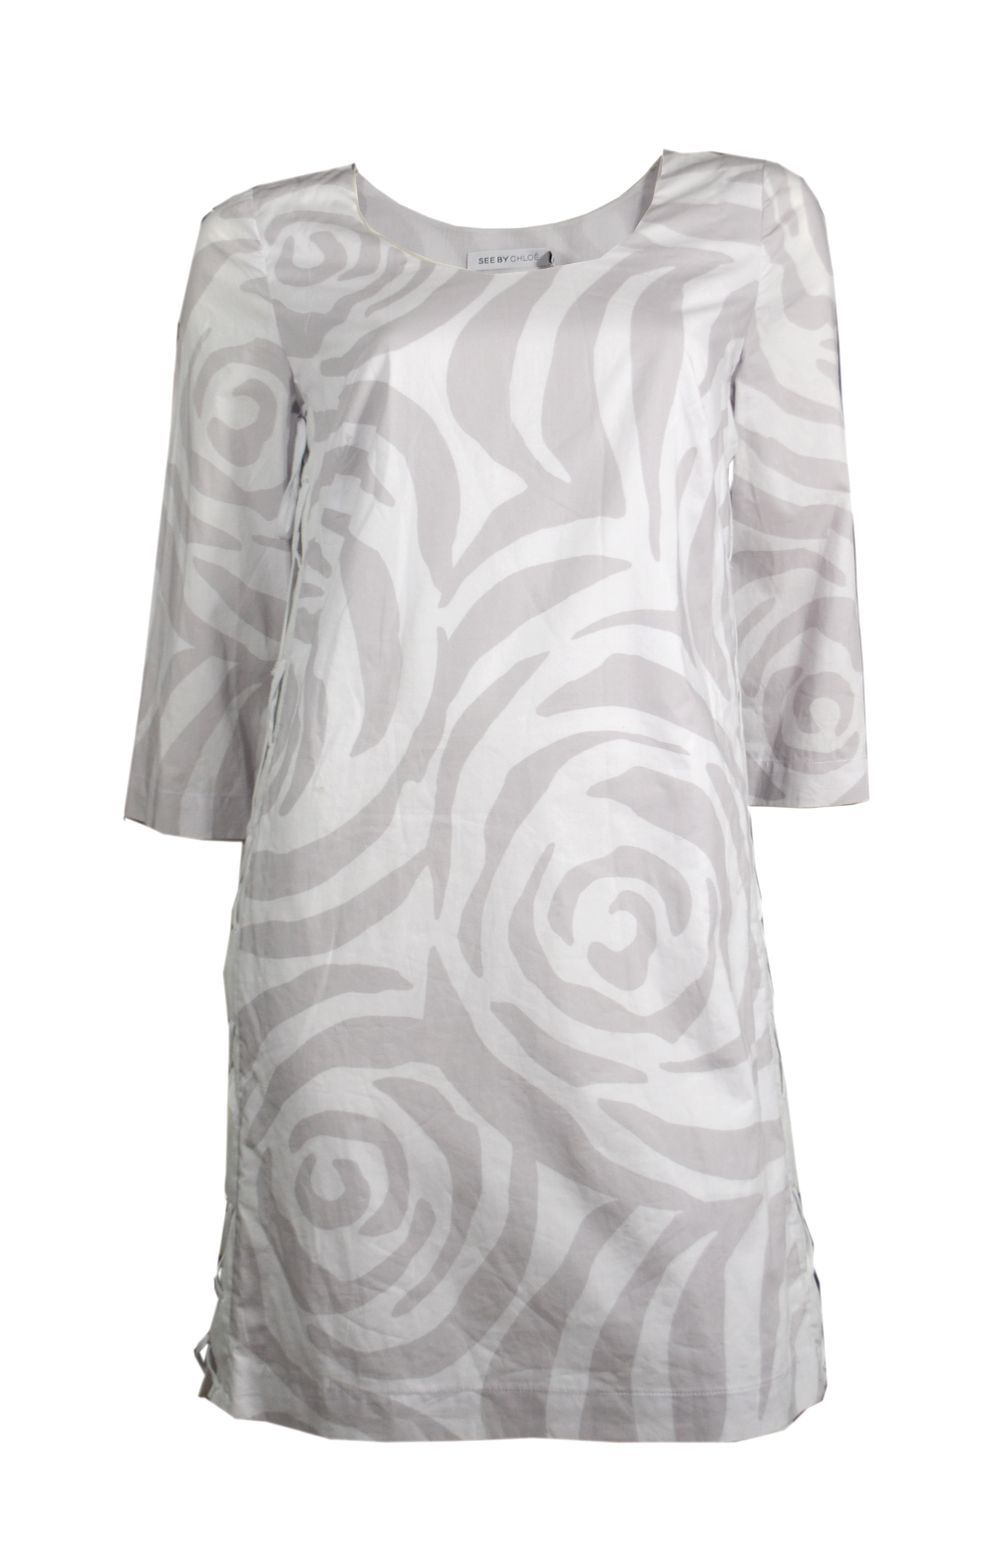 ♥ SEE BY CHLOE ♥ ROBE IMPRIMEE LACEE SUR LES COTéS T. 36 via LES COCOTTES. Click on the image to see more!